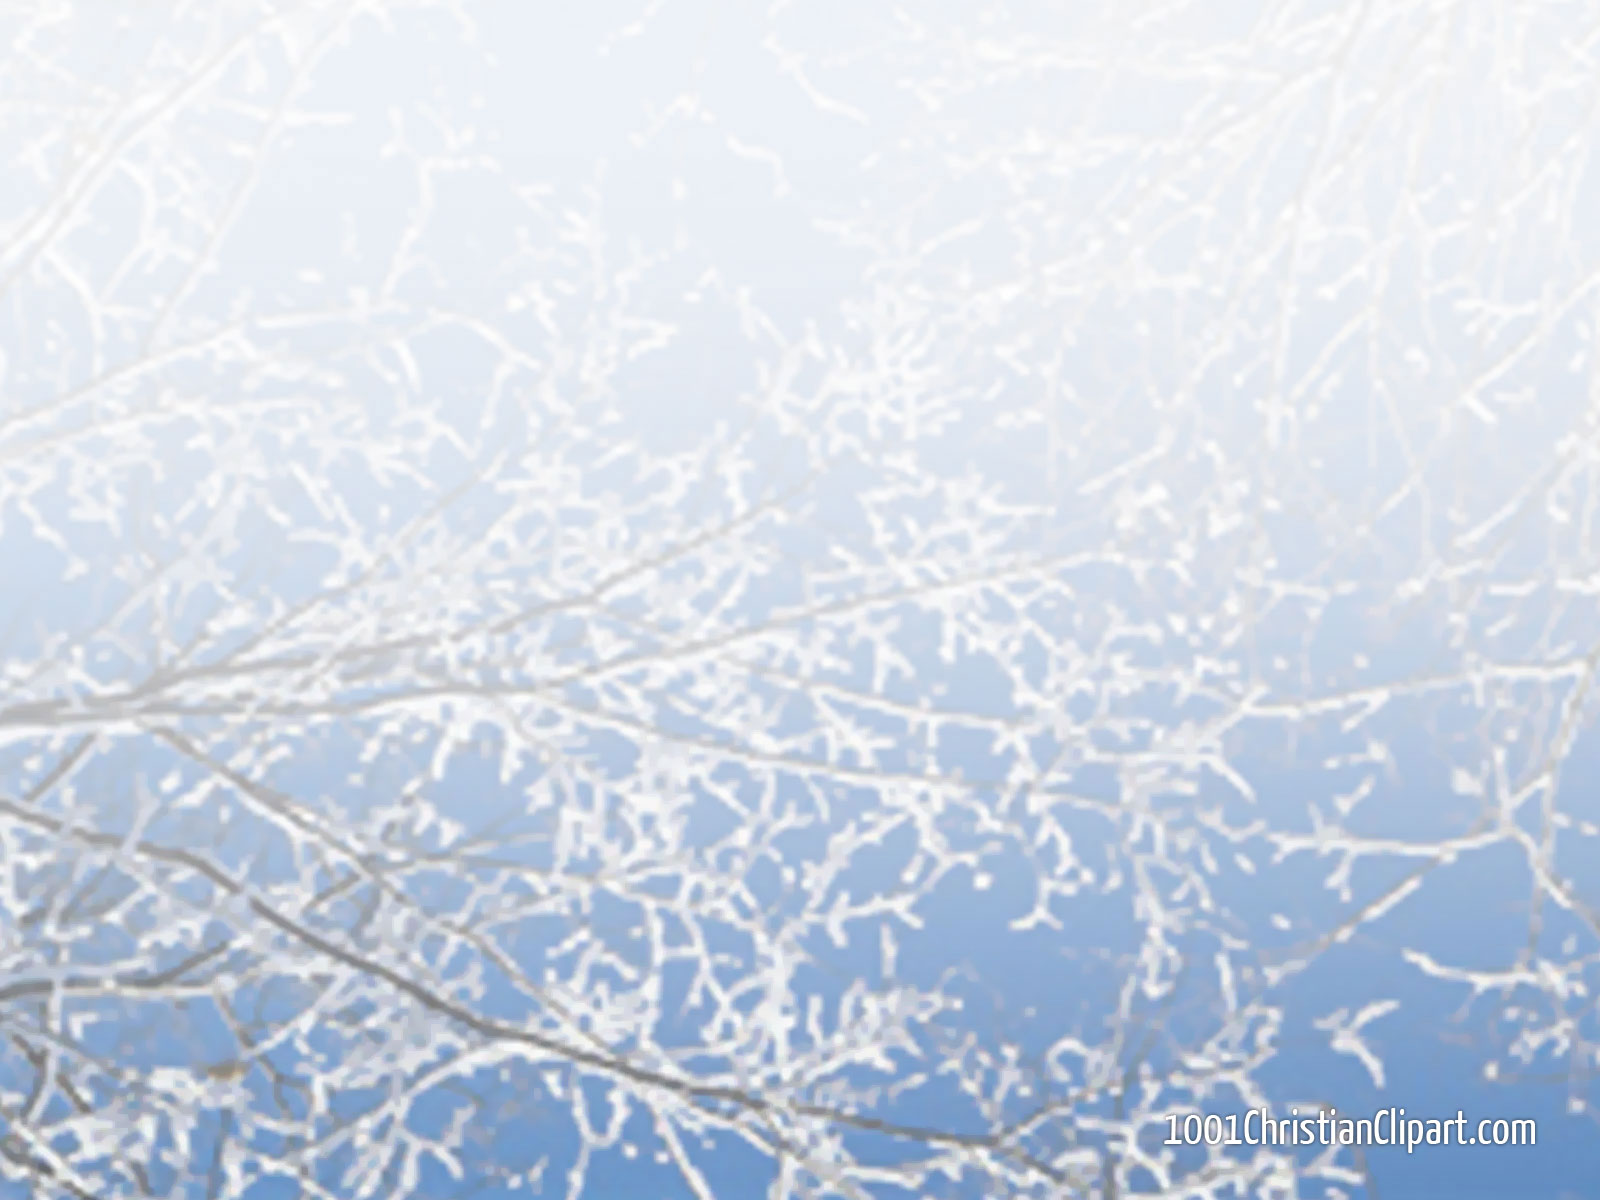 Snow background for powerpoint insrenterprises snow background for powerpoint free powerpoint backgrounds hyper pixels toneelgroepblik Image collections